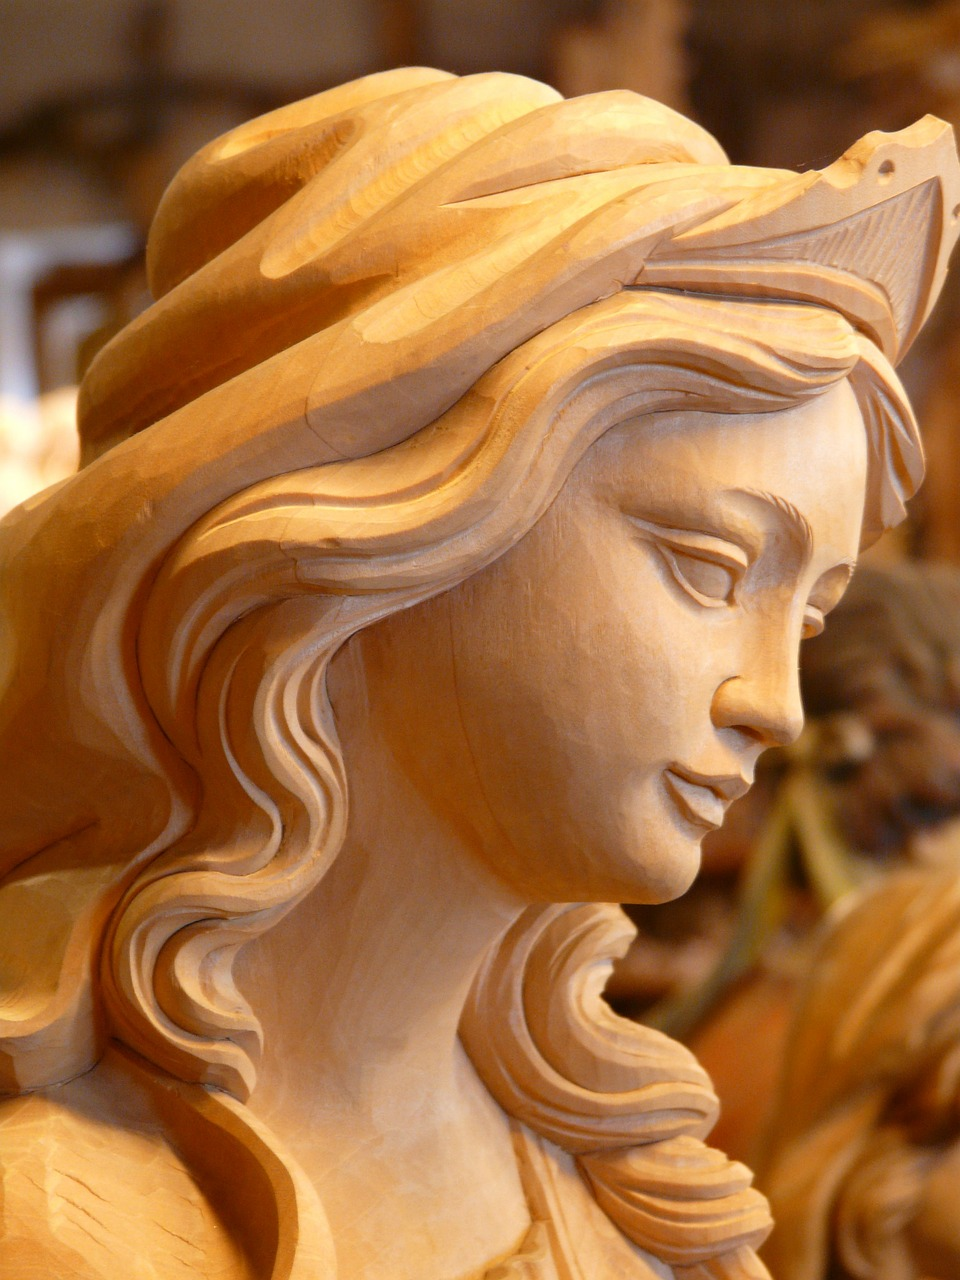 madonna,wood,carved,figure,girl,woman,face,pretty,grace,carving,holzfigur,sweet,in thoughts,dreamy,free pictures, free photos, free images, royalty free, free illustrations, public domain